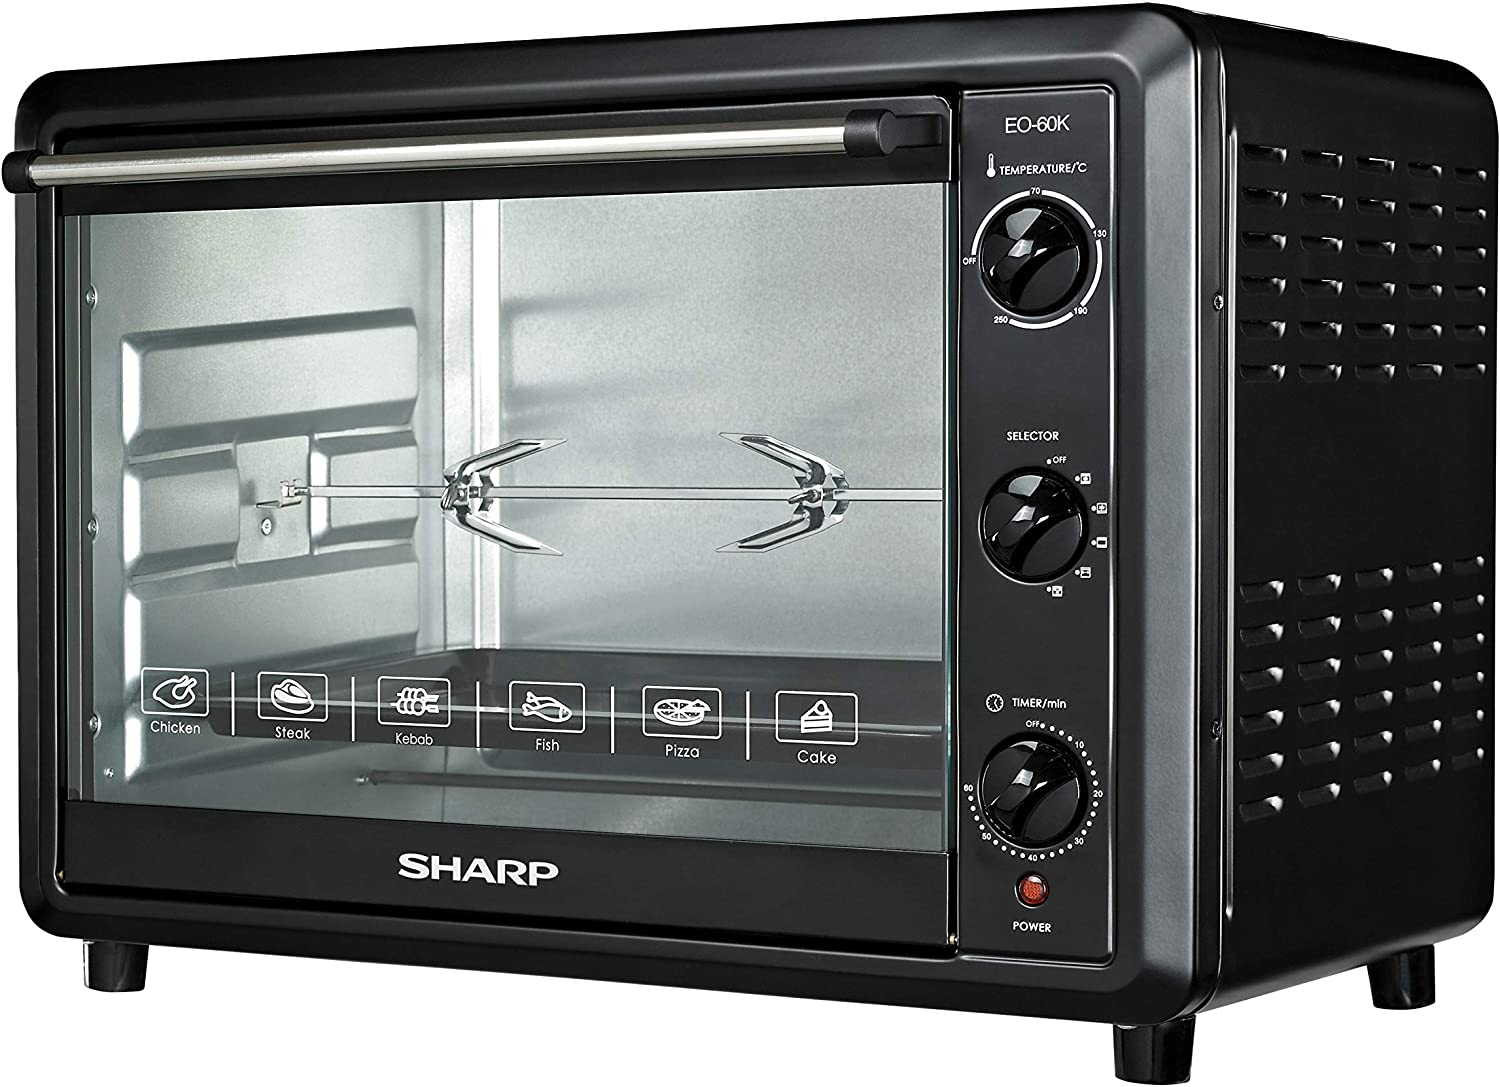 Sharp EO-60K-3 2000W Electric Toaster Oven with Convection Function, 60-Liter, 220V (Non-USA Compliant)